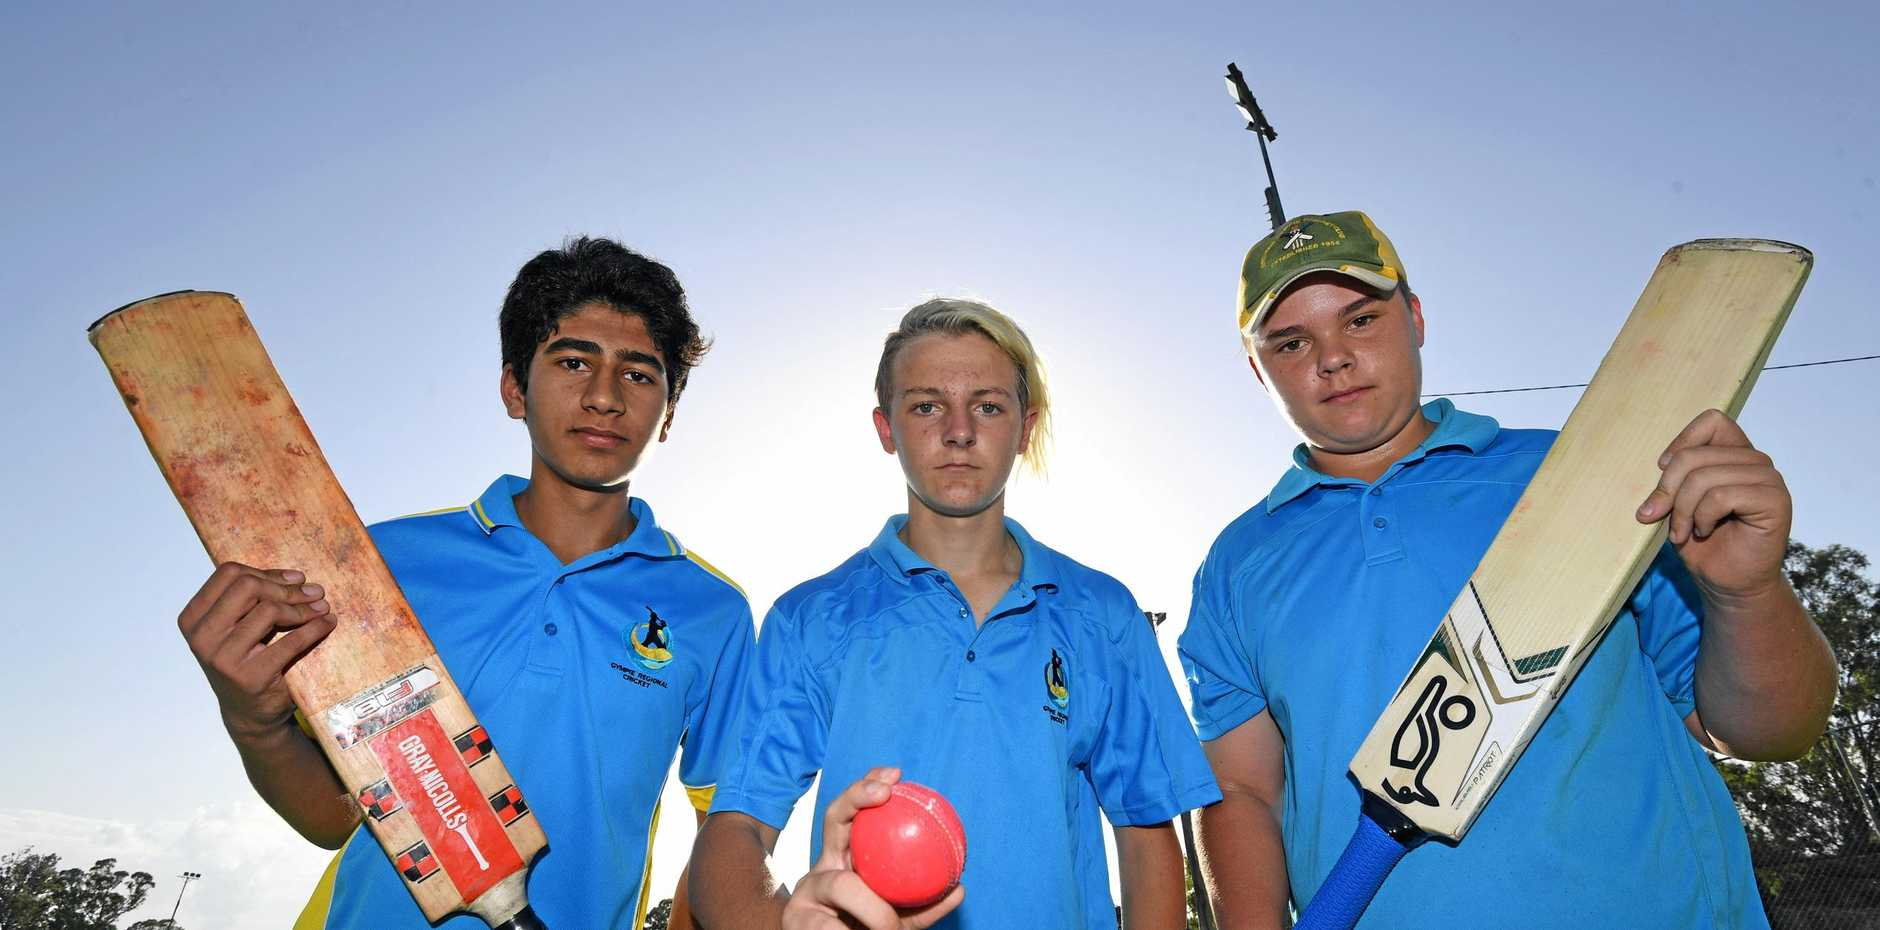 NEXT CHALLENGE: Gympie Regional Cricket juniors Saif Malek, Nathaniel Bailey and Connor Franz prepare for next competition.